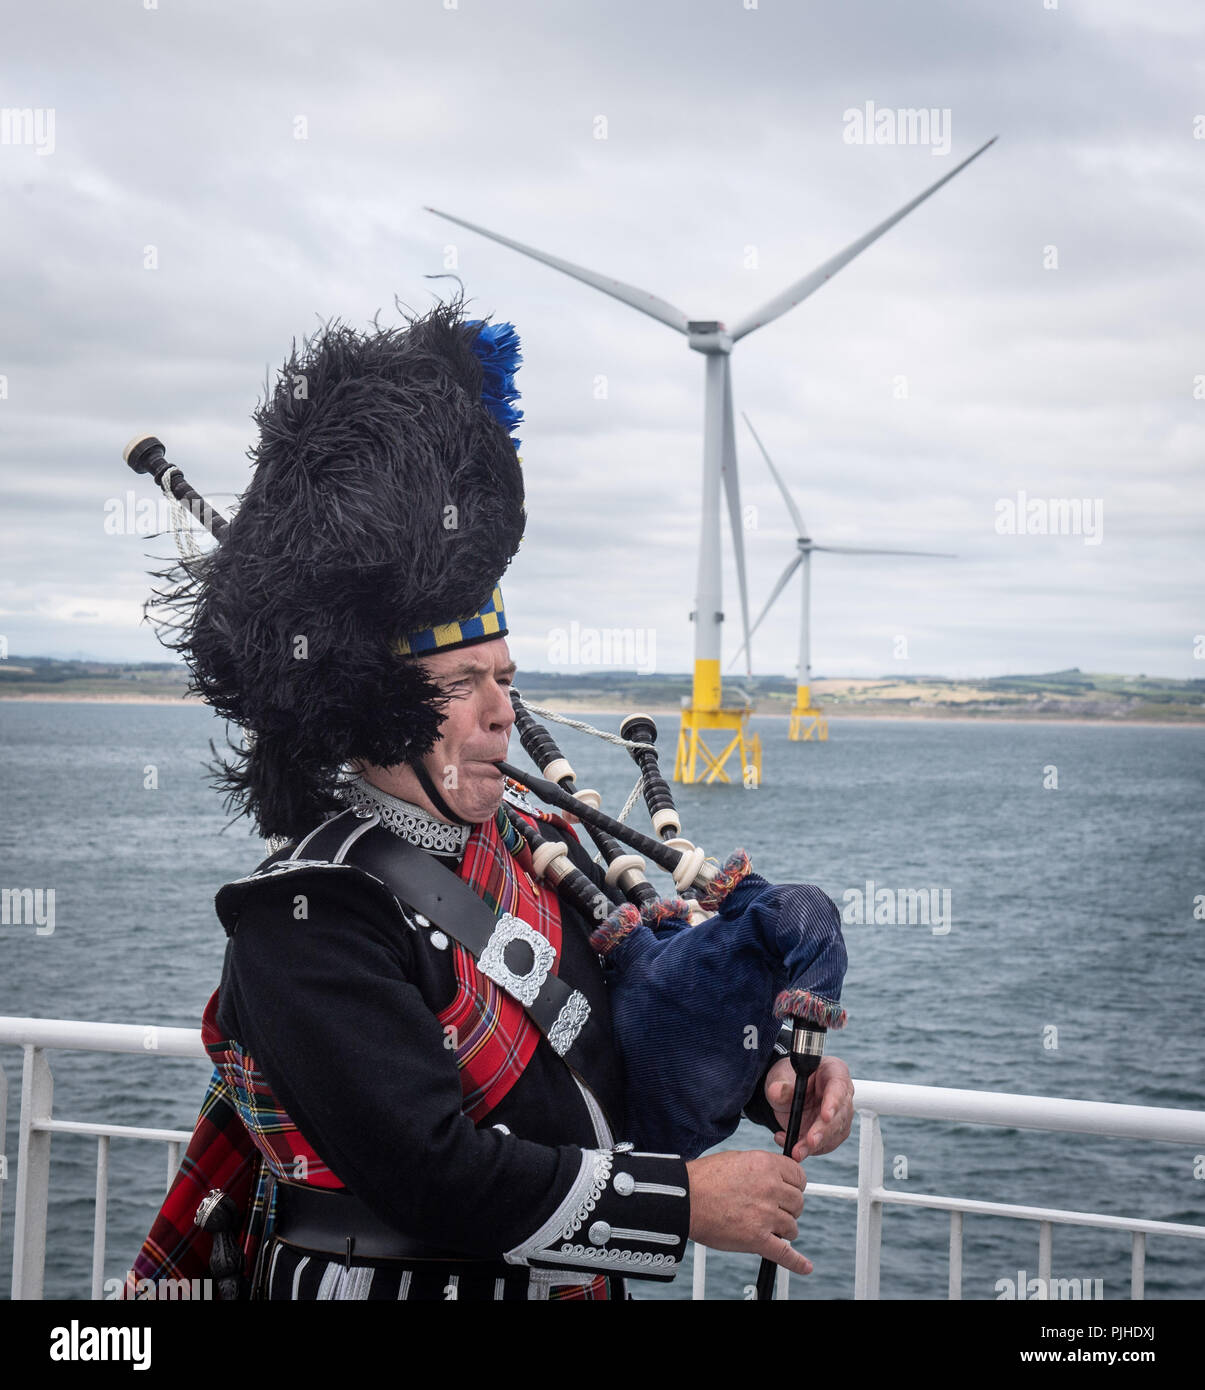 Piper Norman Fiddes at the opening of Vattenfall's European Offshore Wind Deployment Centre (EOWDC) off the coast of Aberdeen. - Stock Image